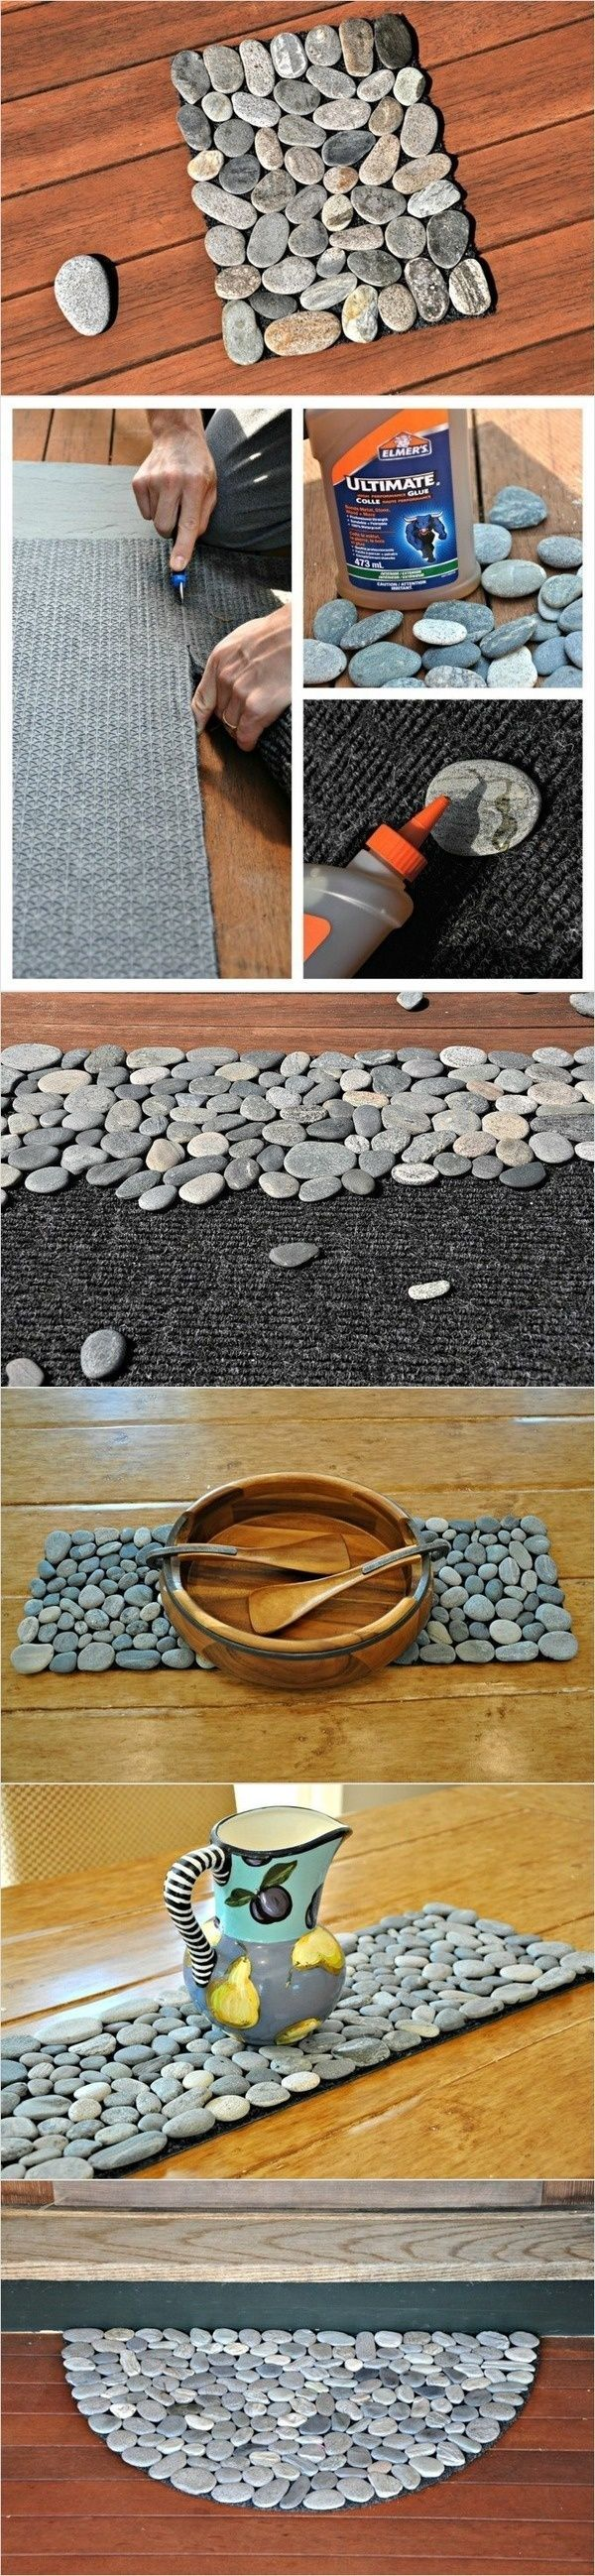 DIY pebble mat ~ great gift idea.. Mod podge to make stones glossy and waterproof